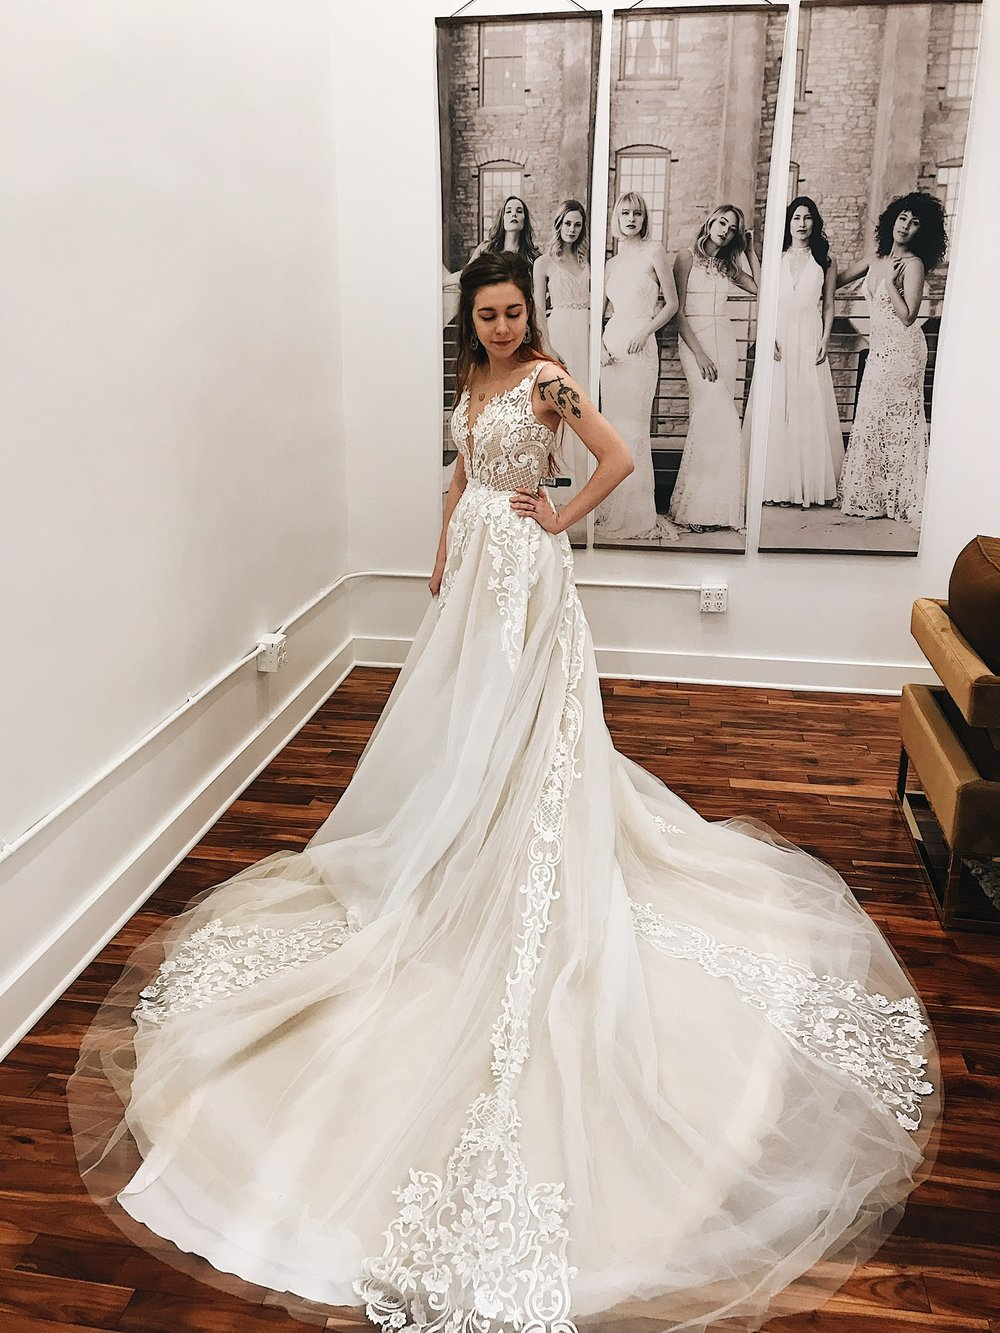 Calla Blanche Gowns | For the Modern + Glamorous Bride|a&bé bridal shop